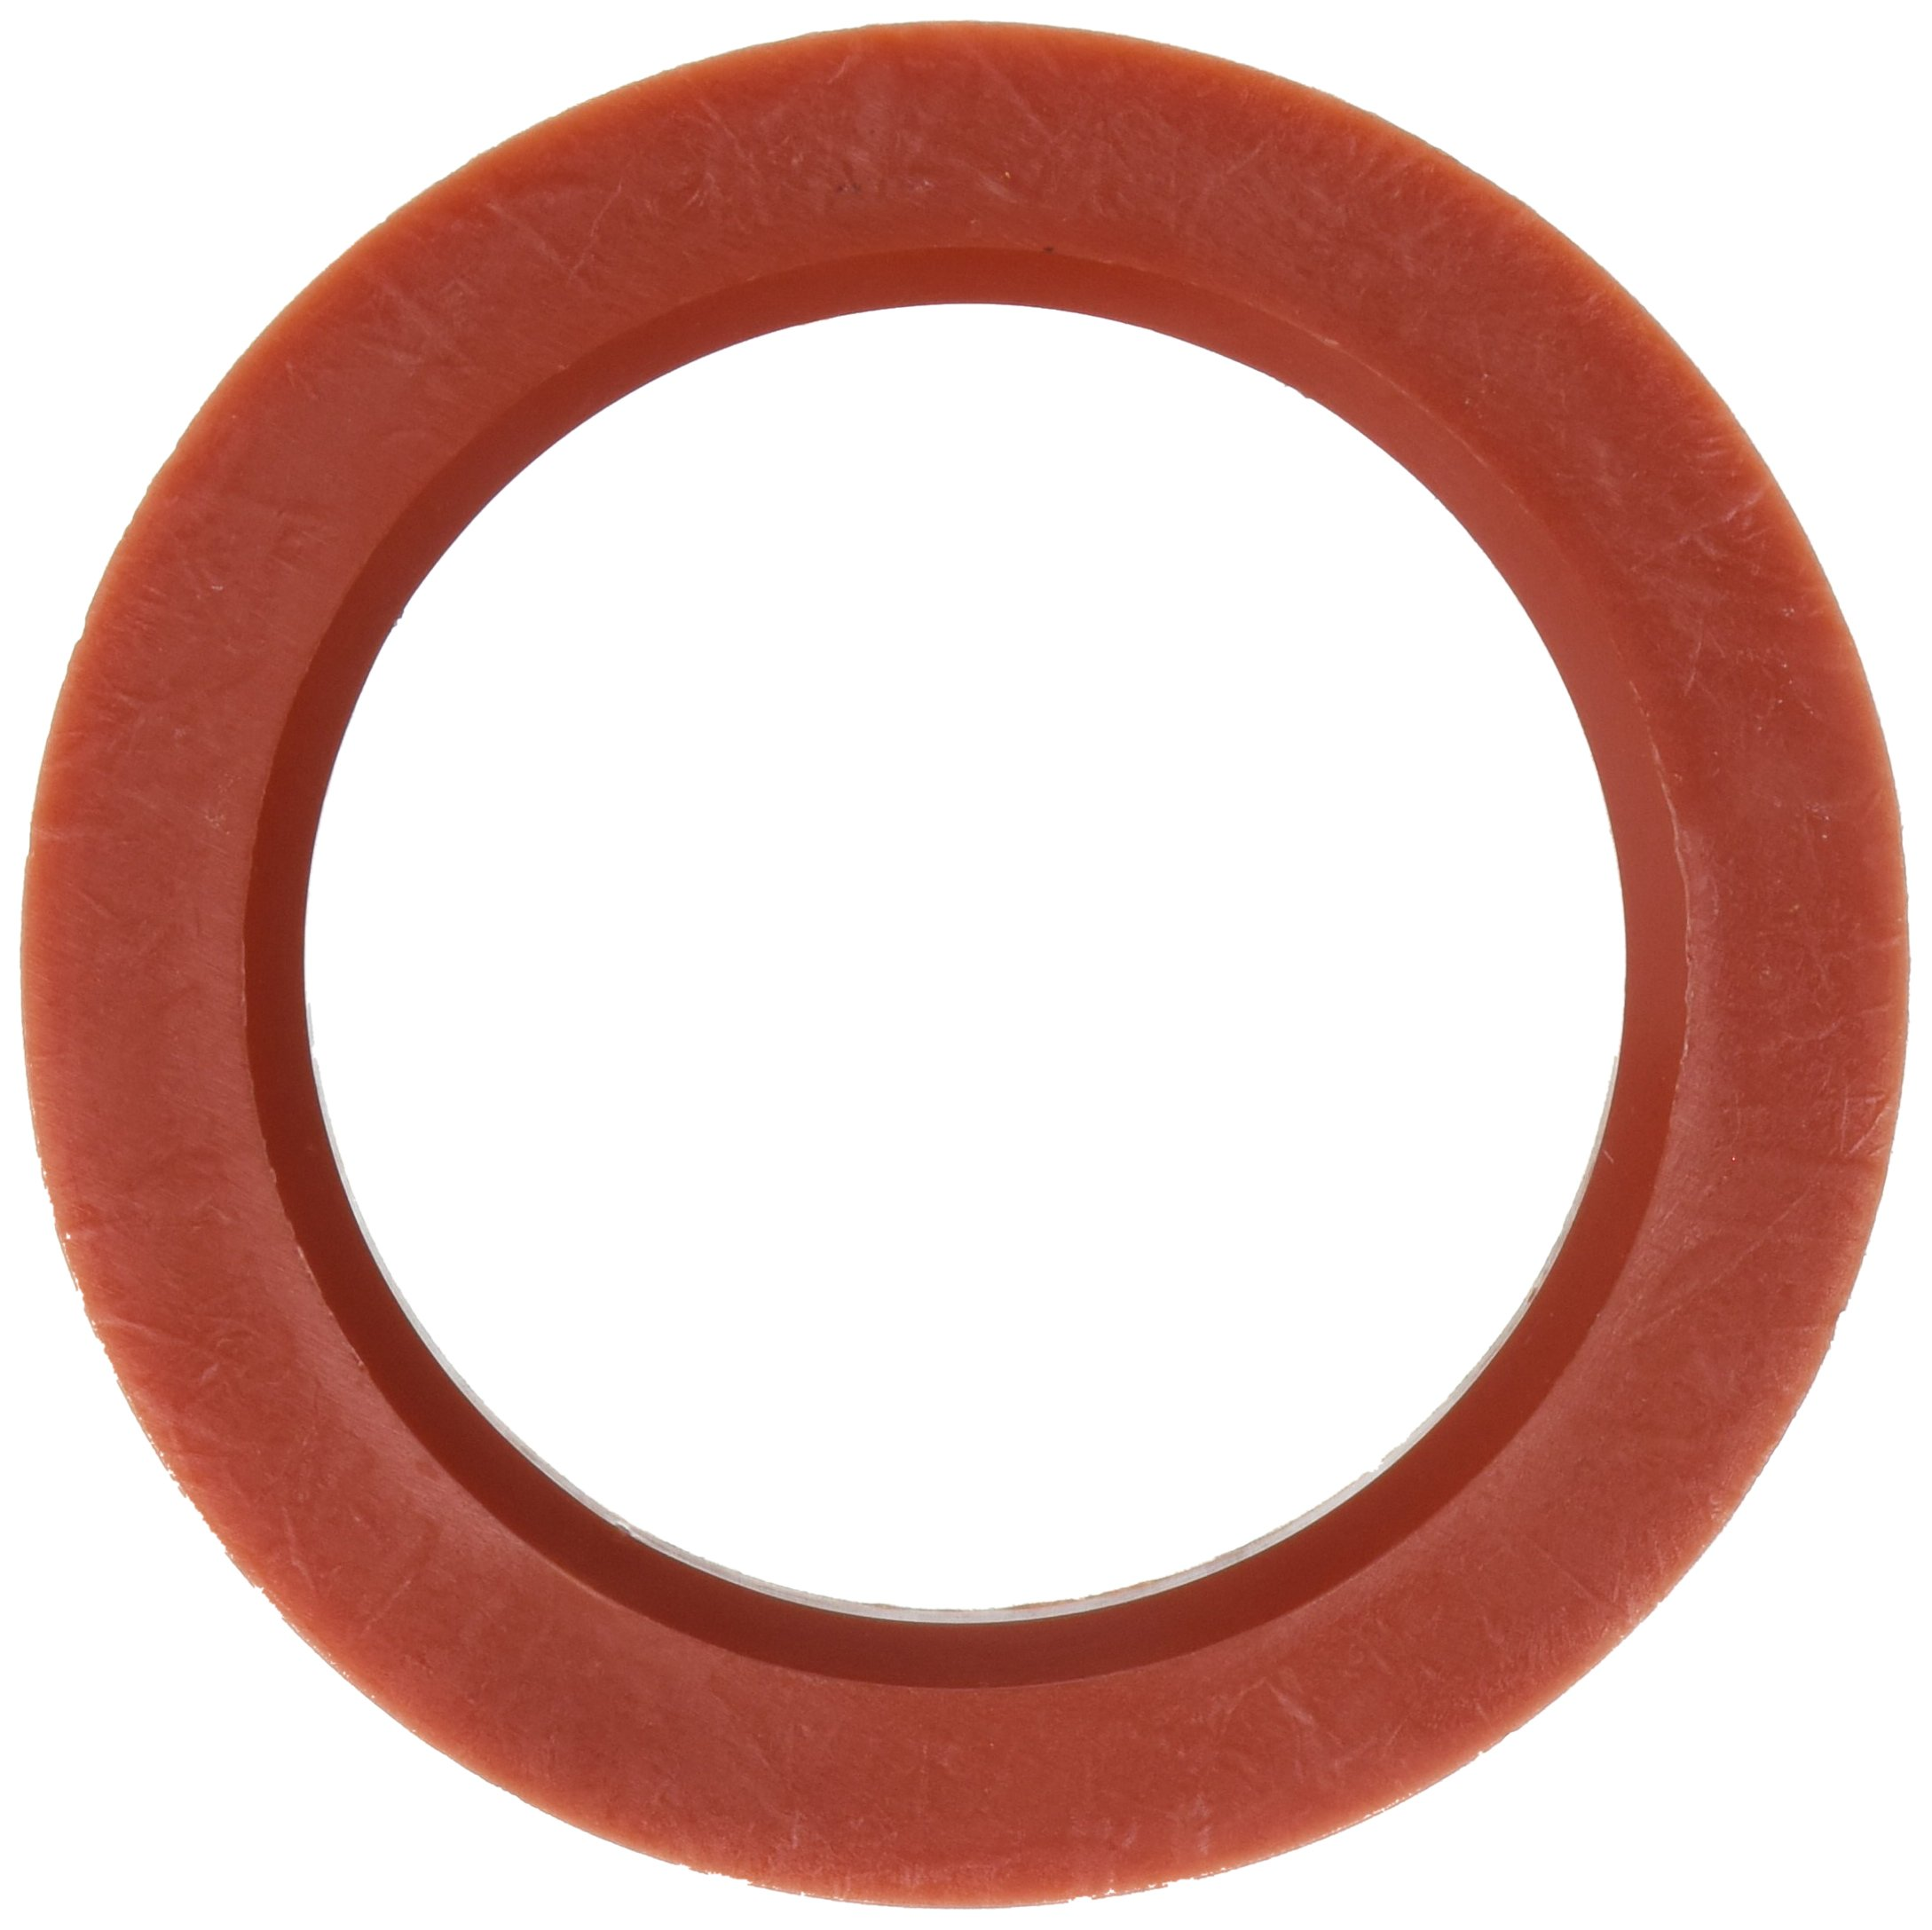 Coyote Wheel Accessories 106-7810 Hub Centric Ring, Set of 4 (106mm OD to 78.00mm ID)